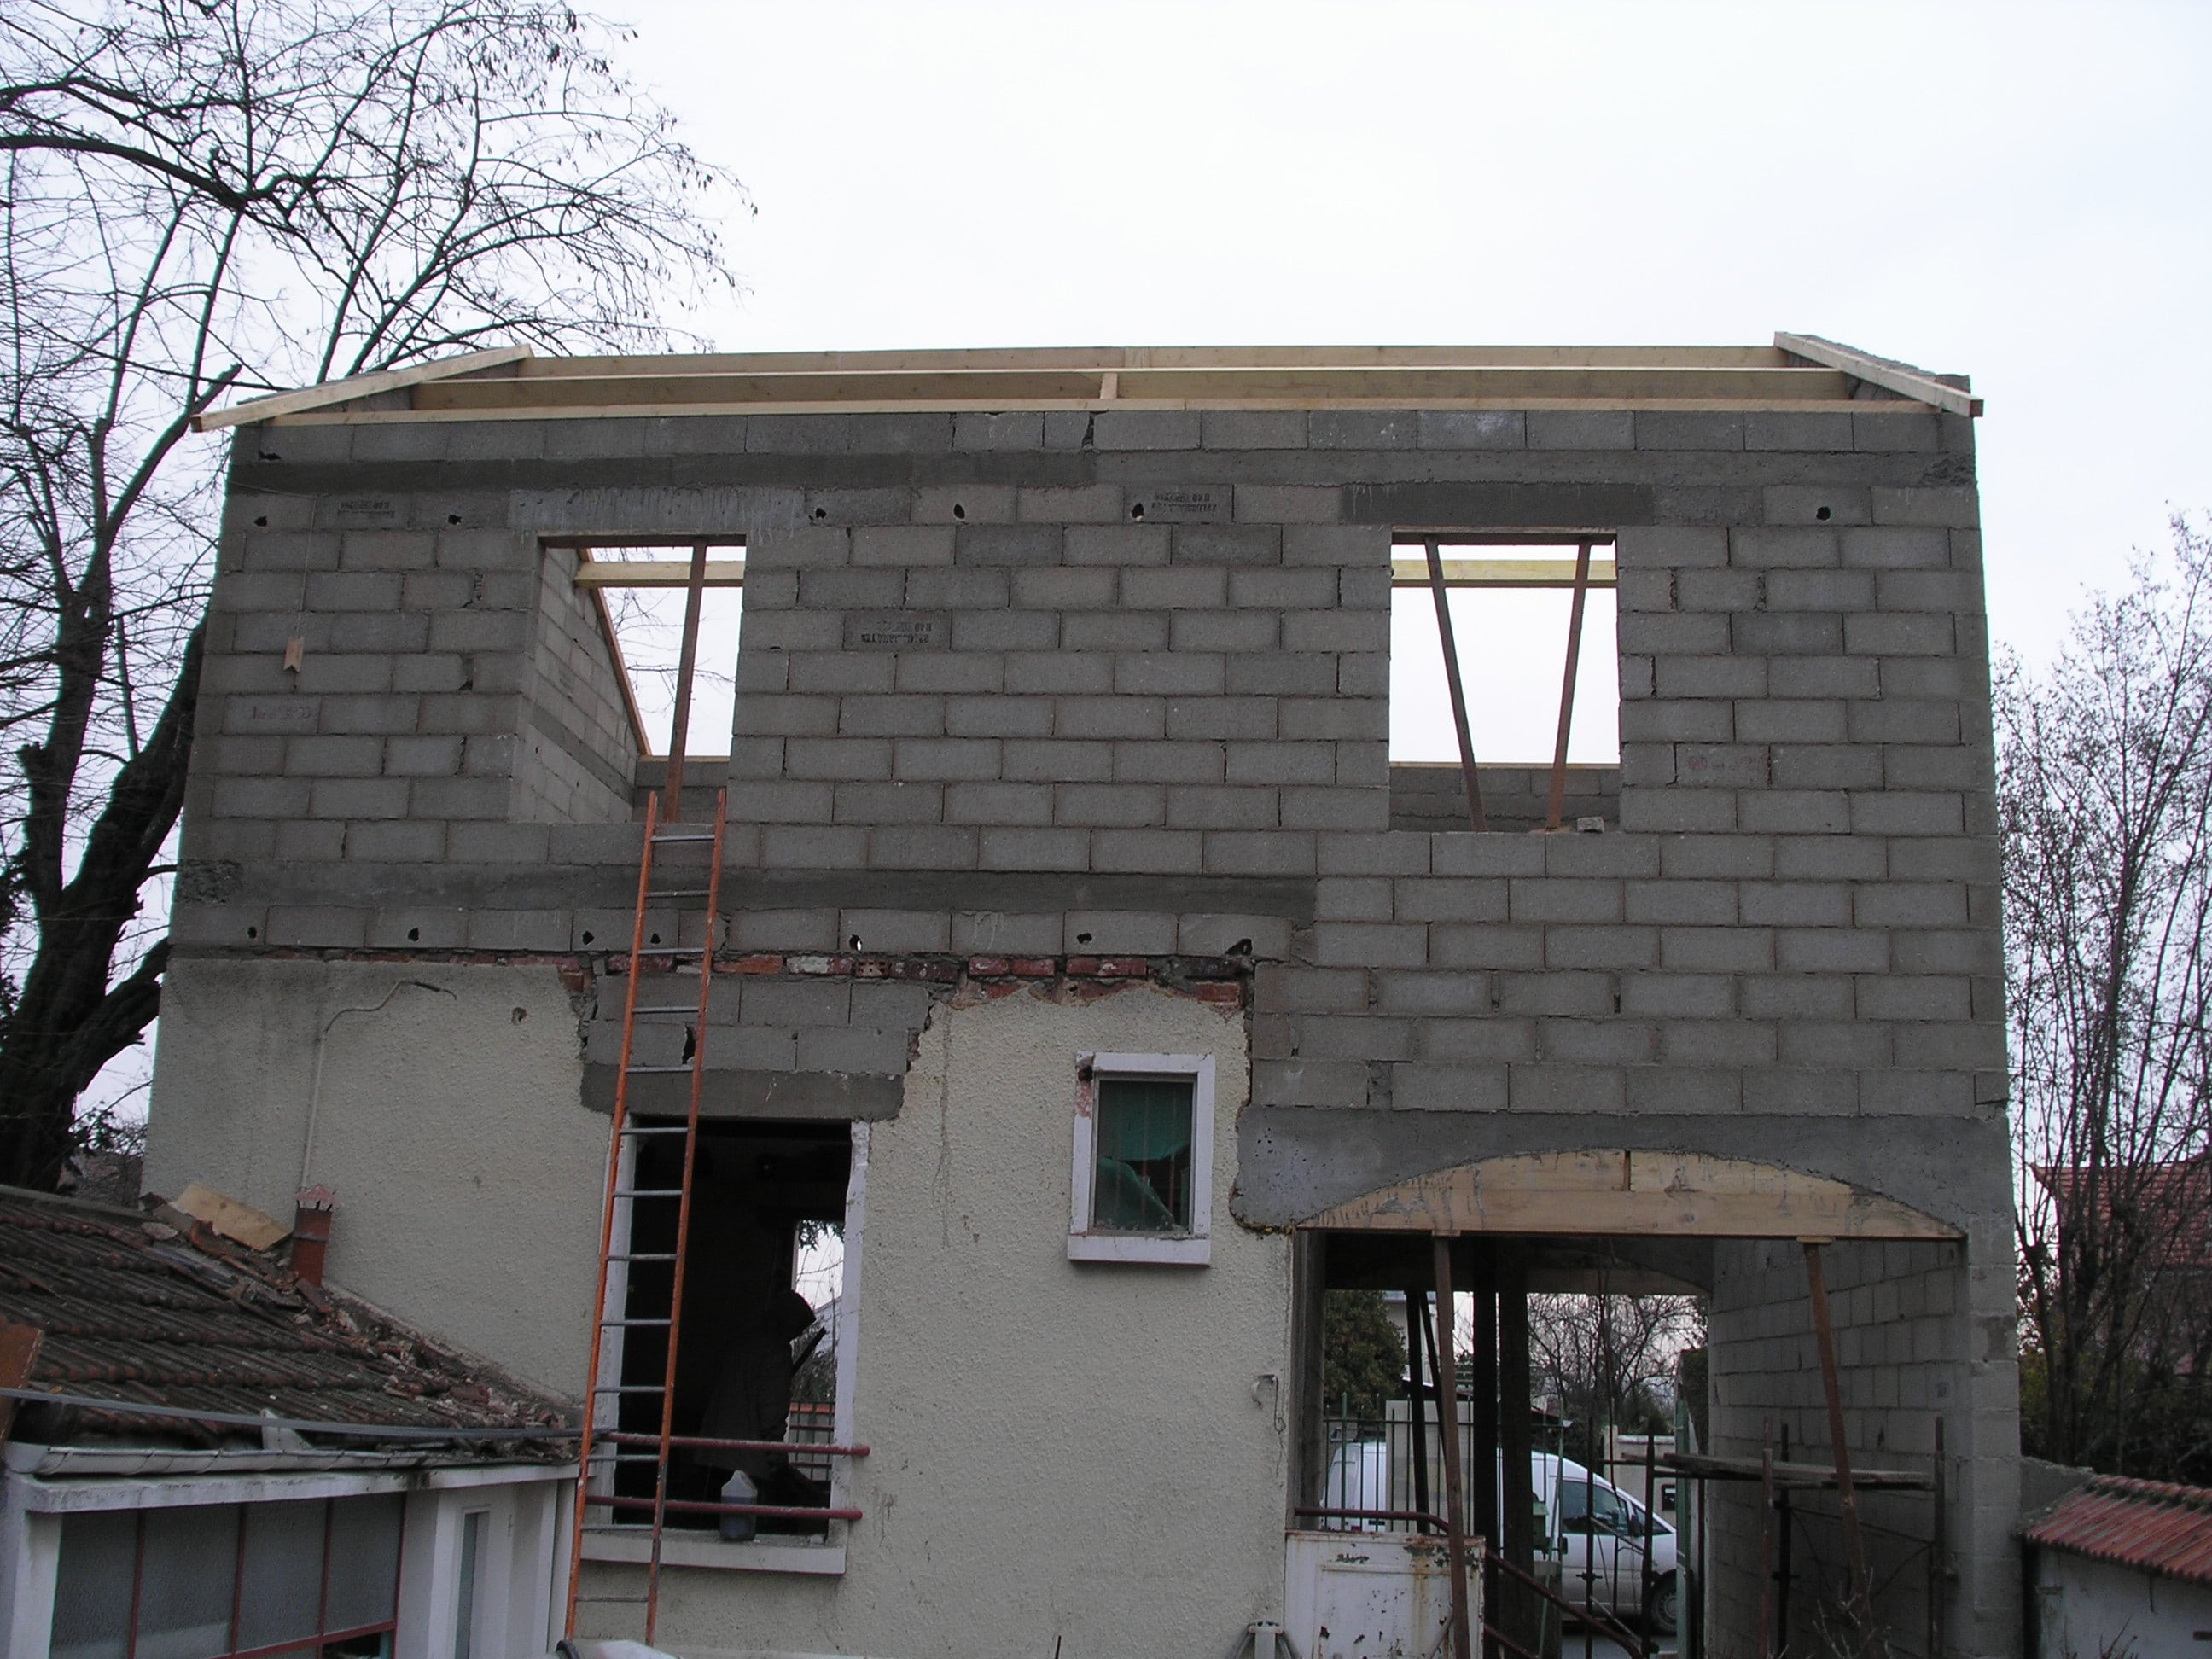 travaux-pavillon-18-demolition-agrandissement-couverture-ravalement-texas-batiment-min